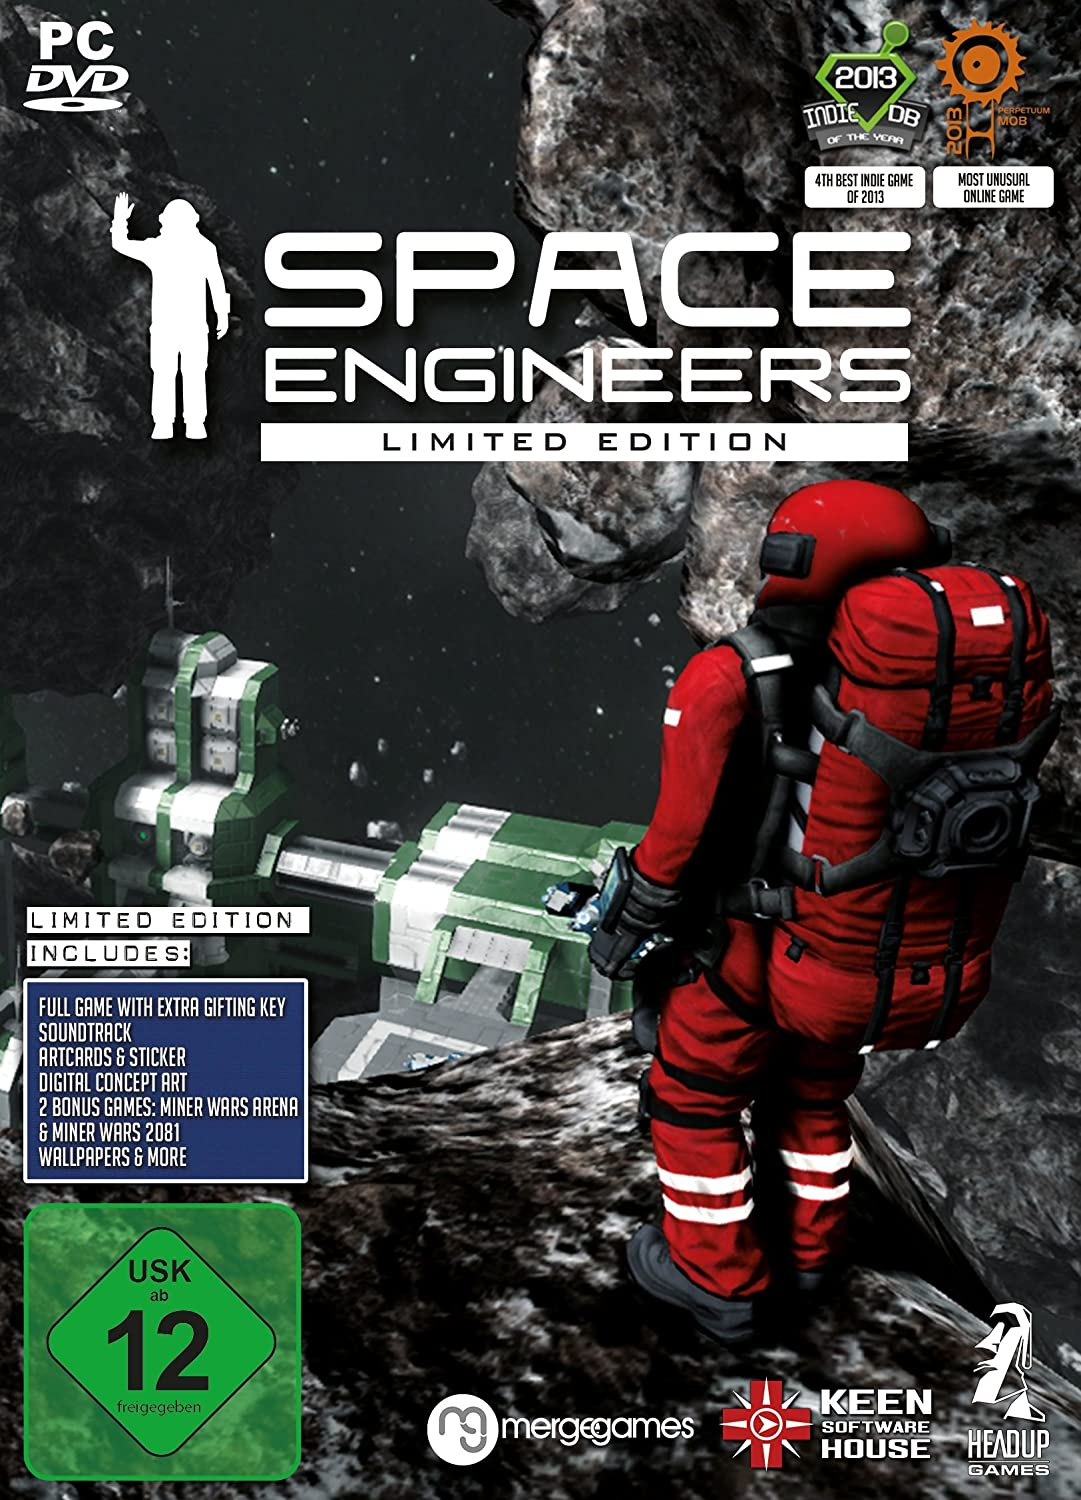 Space Engineers - Limited Edition: Amazon.de: Games